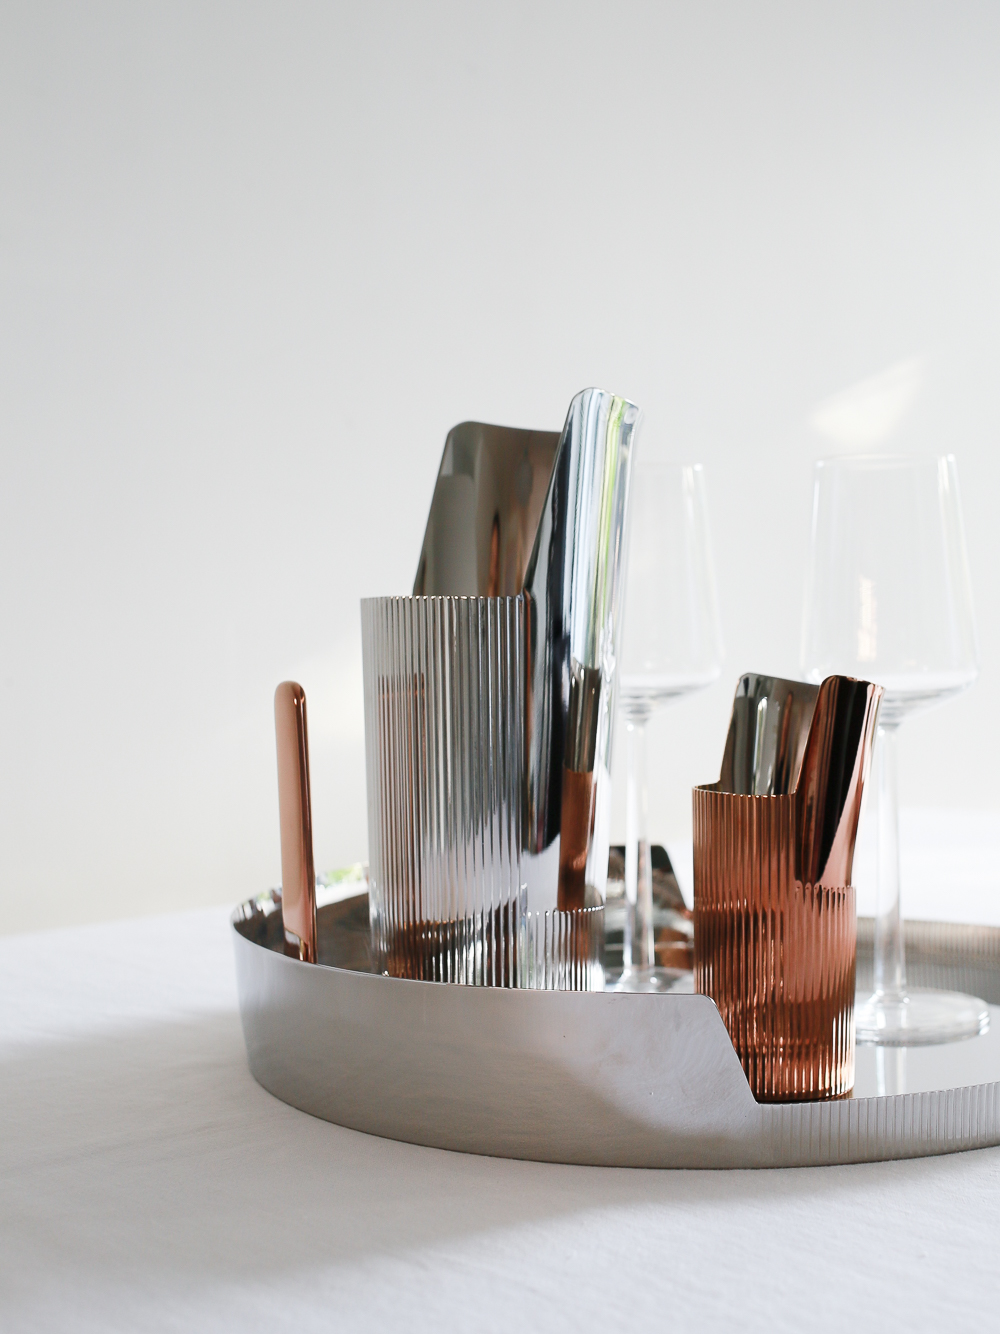 Urkiola collection by Patricia Urquiola for Georg Jensen | Photography by Design Hunter